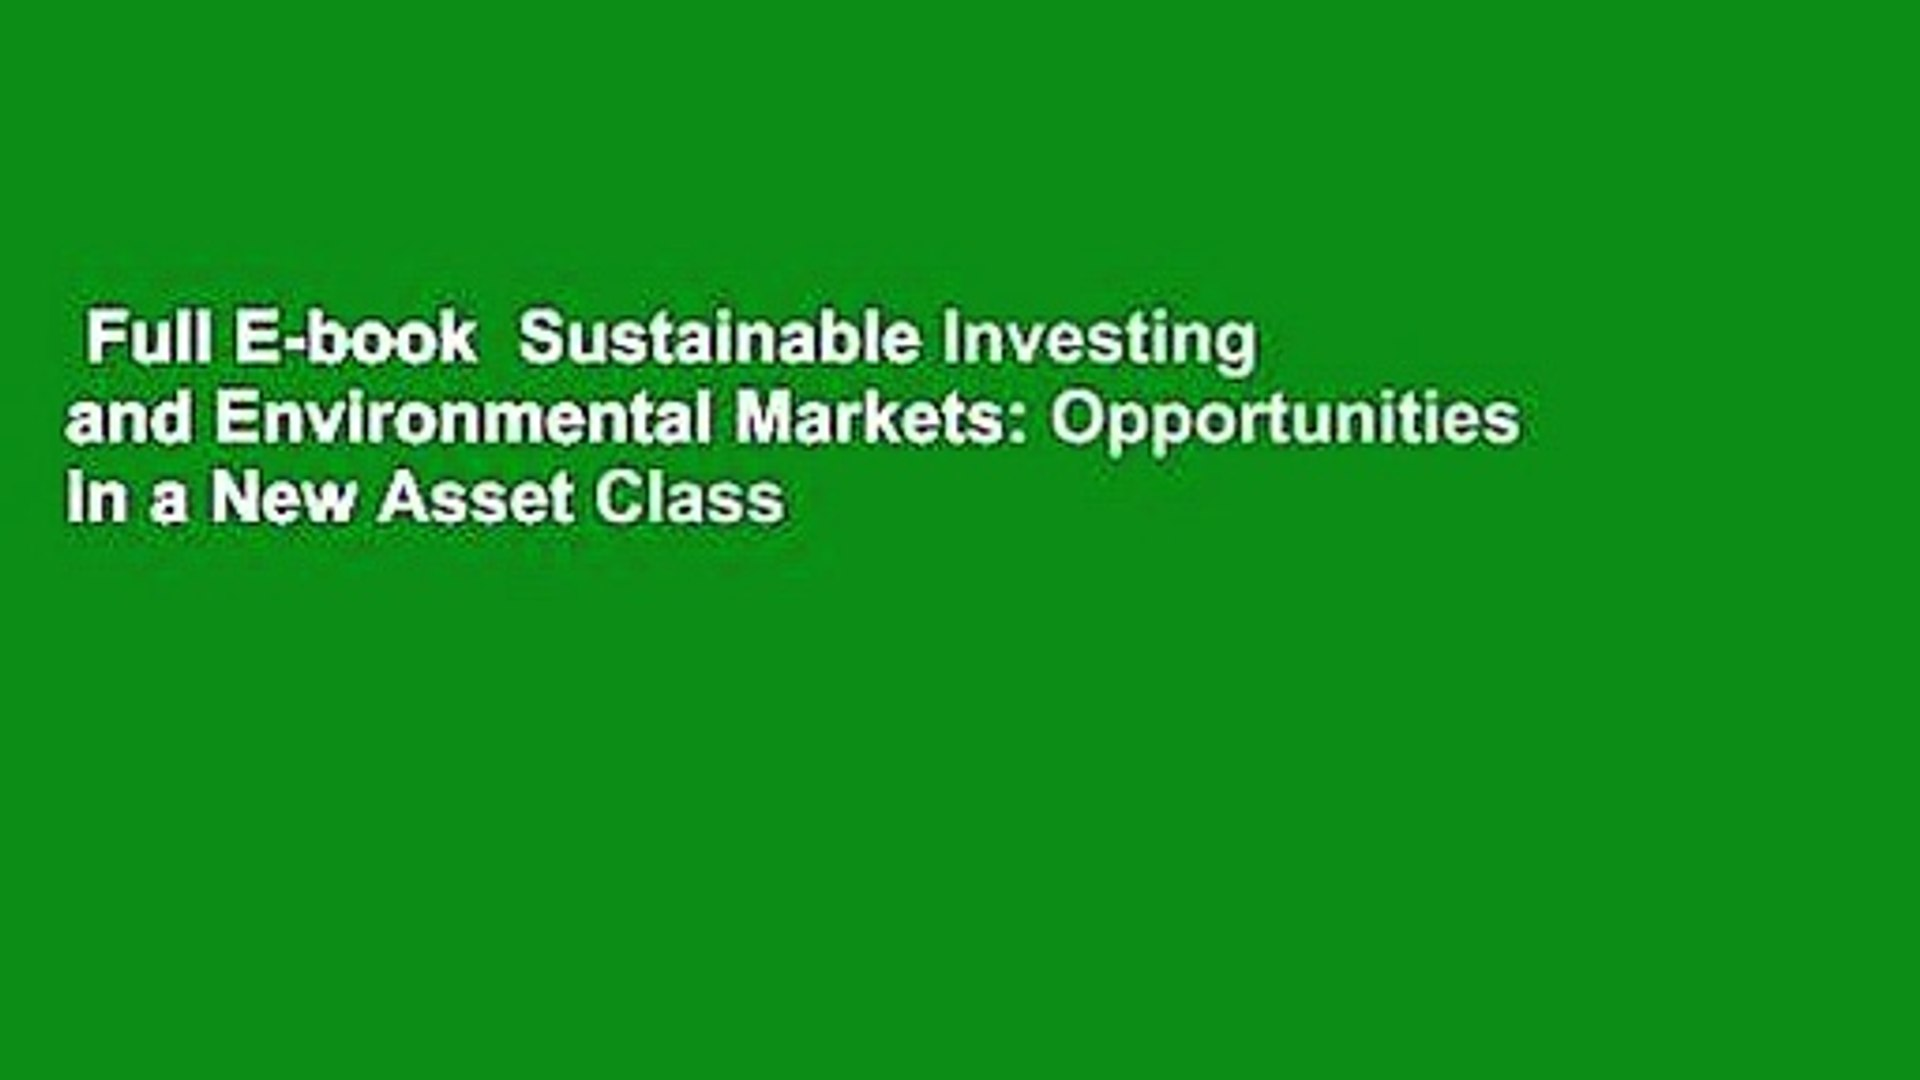 Full E-book  Sustainable Investing and Environmental Markets: Opportunities in a New Asset Class